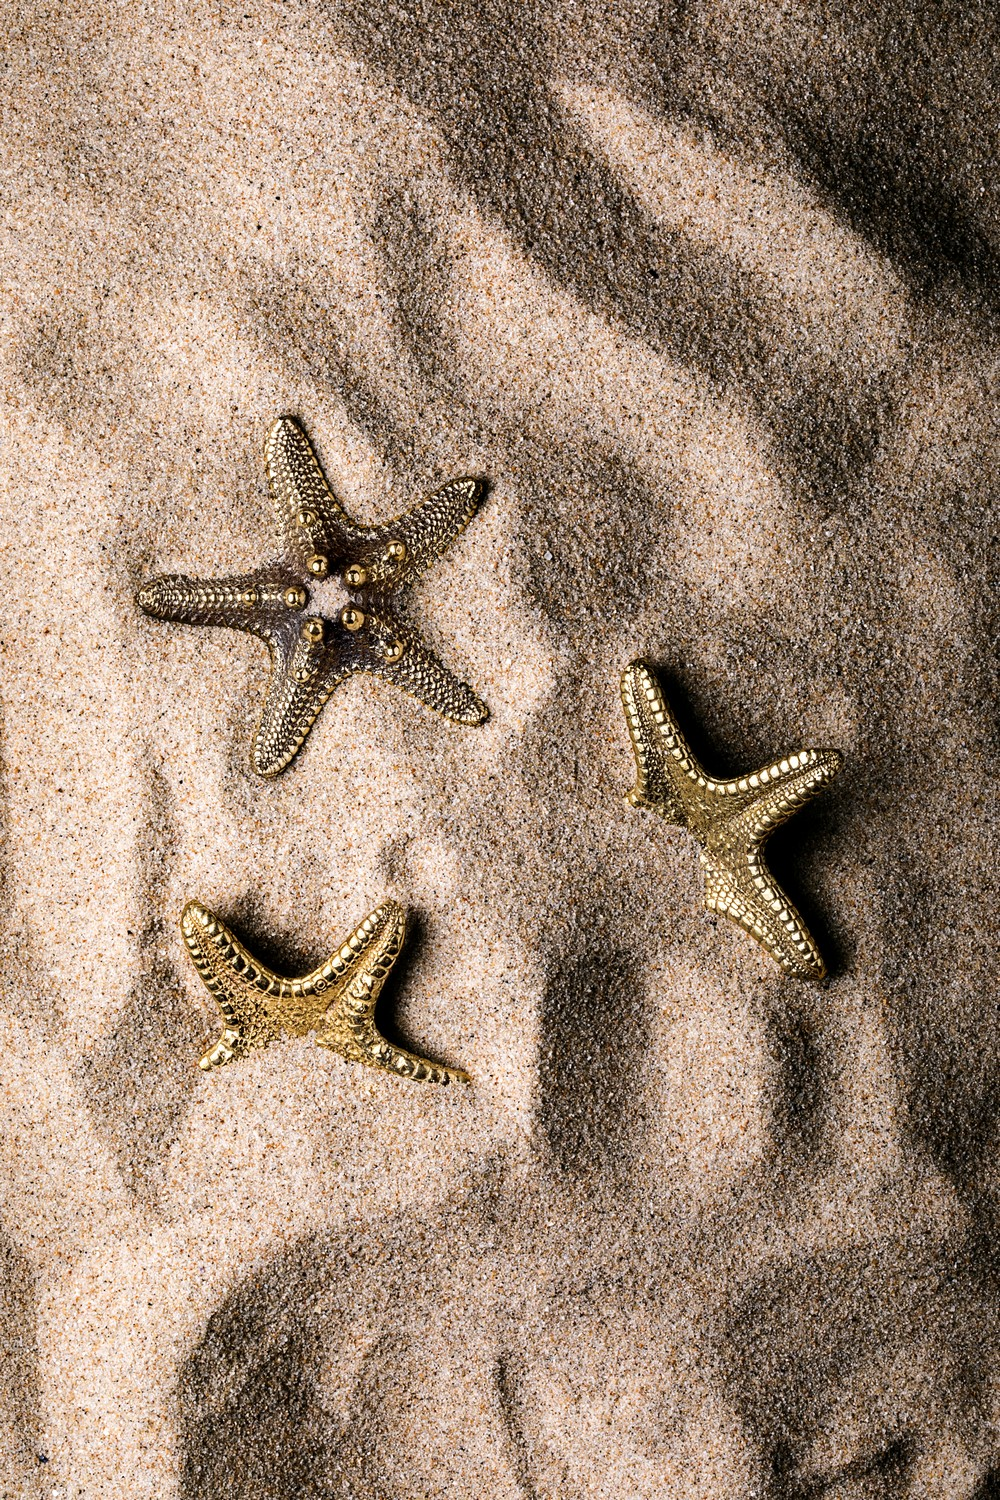 How to Decorate a Home with Marine Life-Inspired Jewelry Hardware 2 jewelry hardware How to Decorate a Home with Marine Life-Inspired Jewelry Hardware How to Decorate a Home with Marine Life Inspired Jewelry Hardware 2